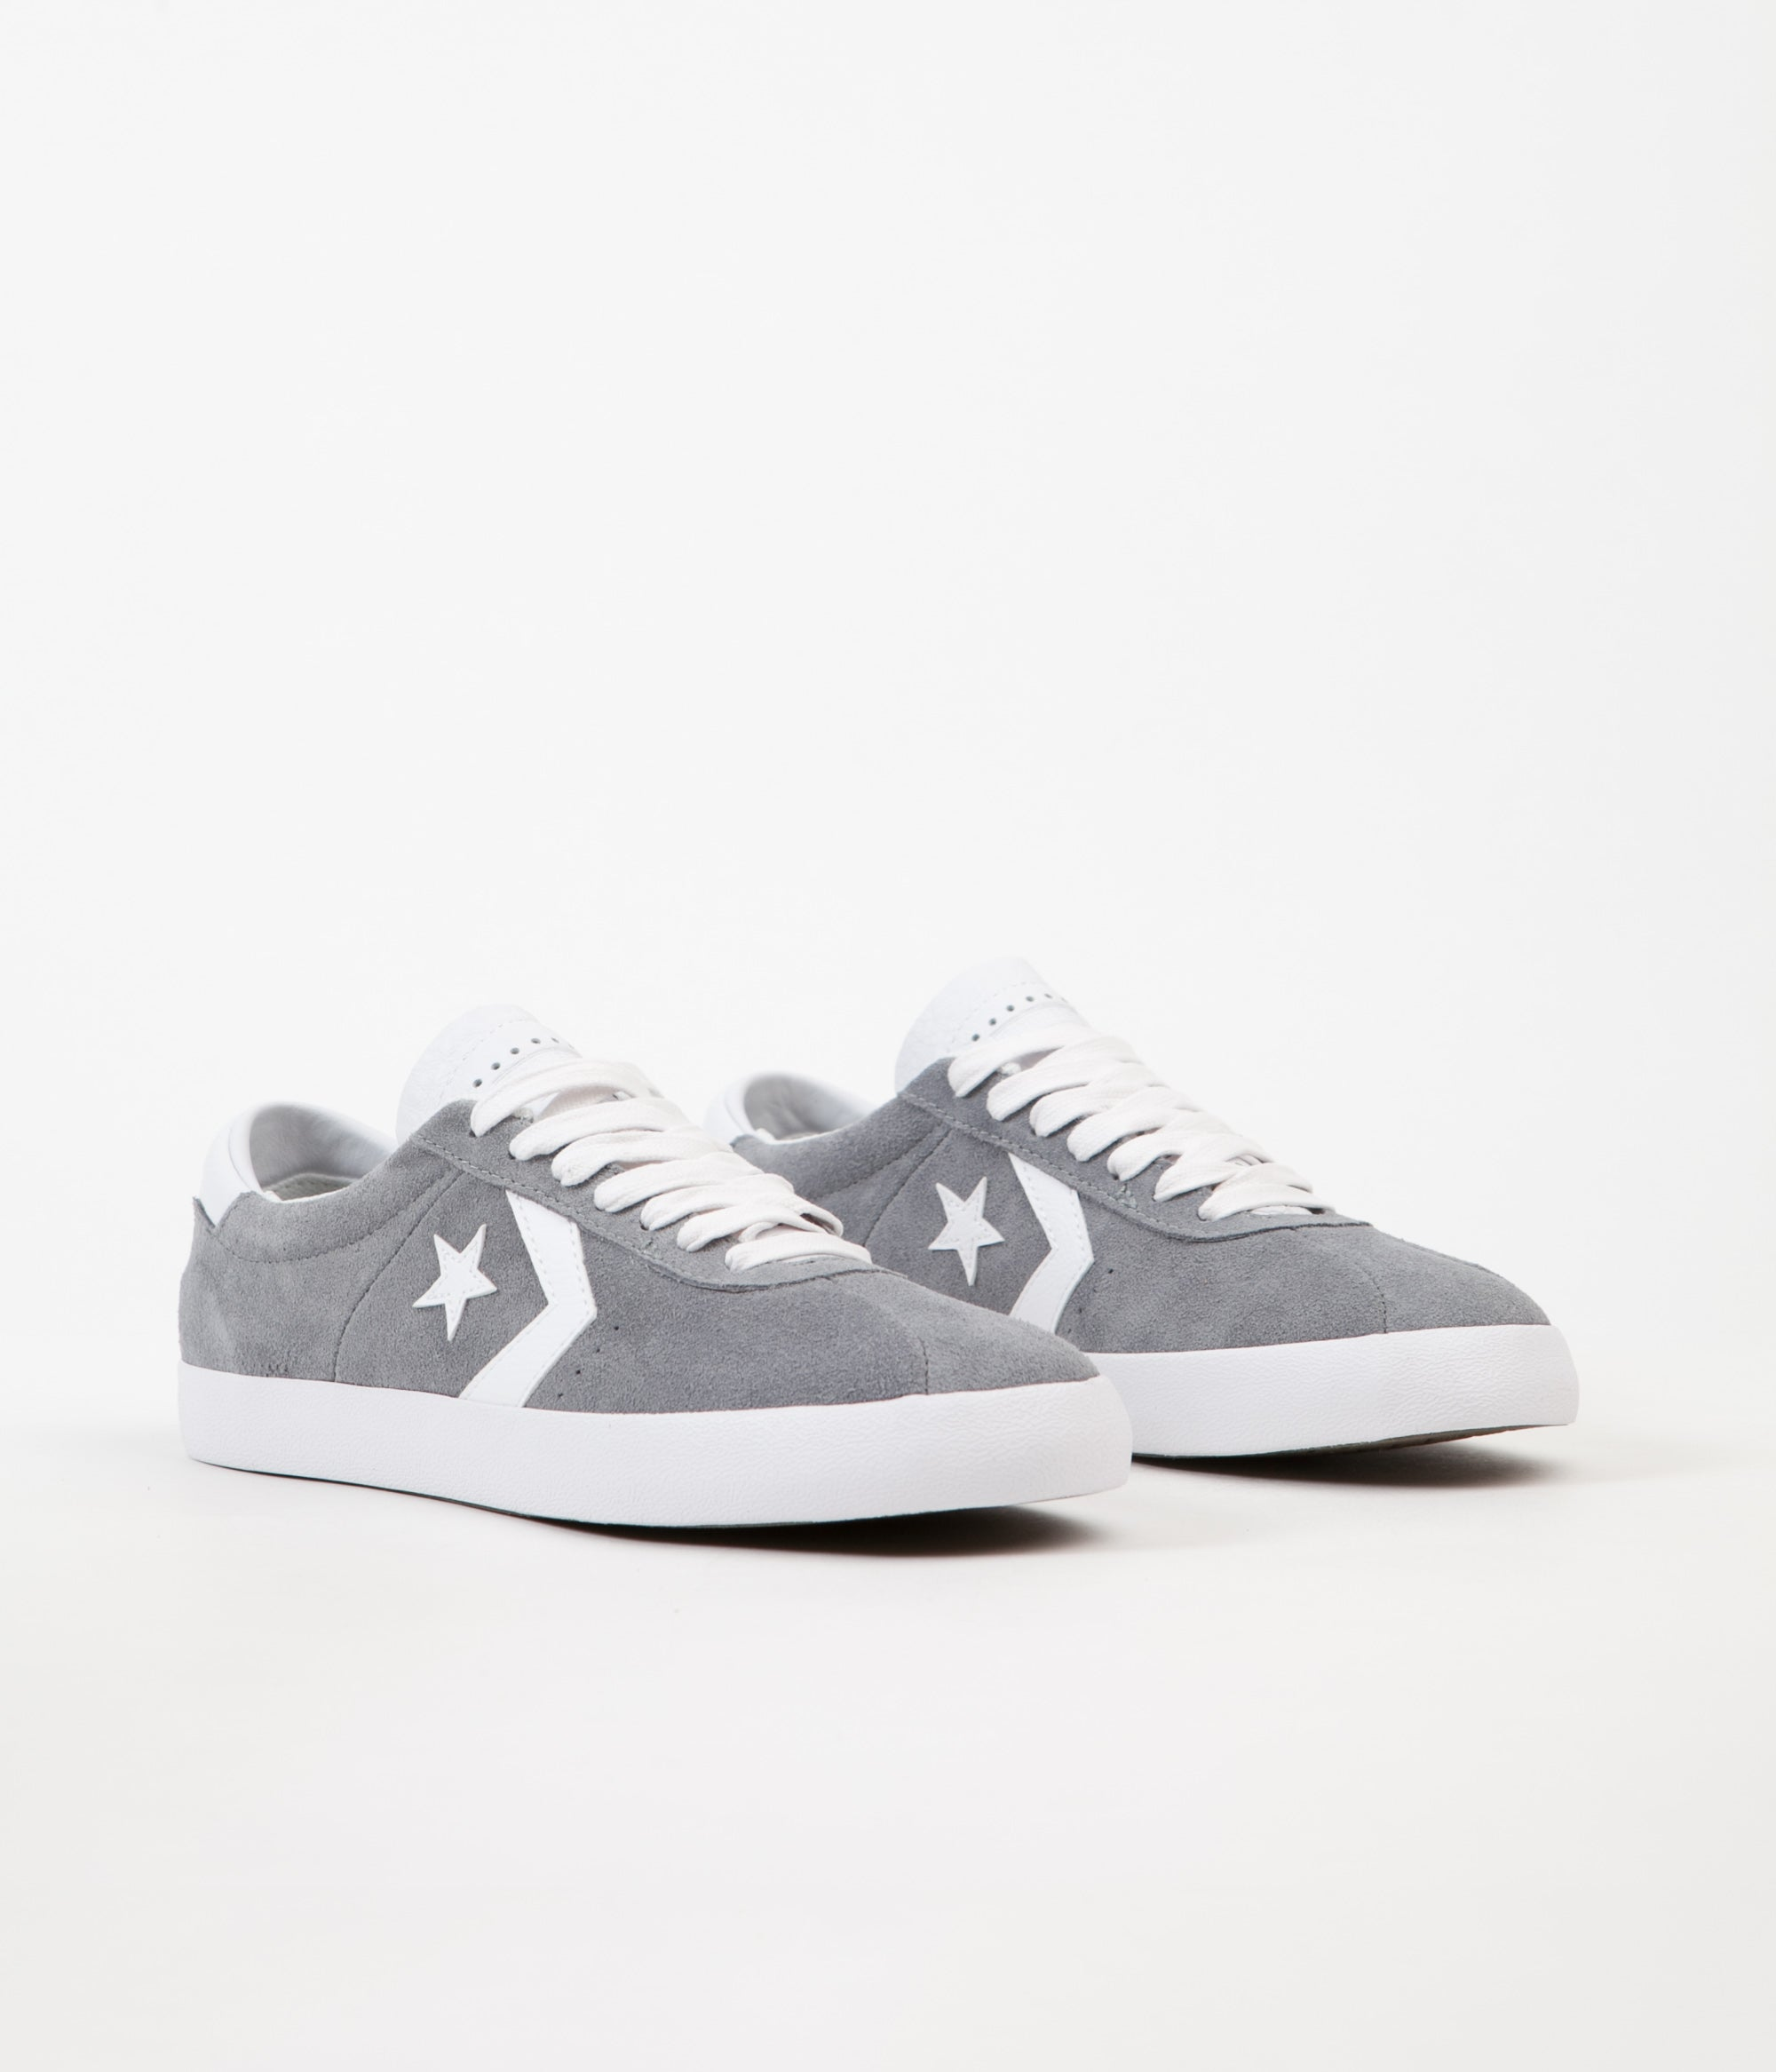 Grey Pro Ox Shoes Cool White White Breakpoint Converse YIf7g6byv